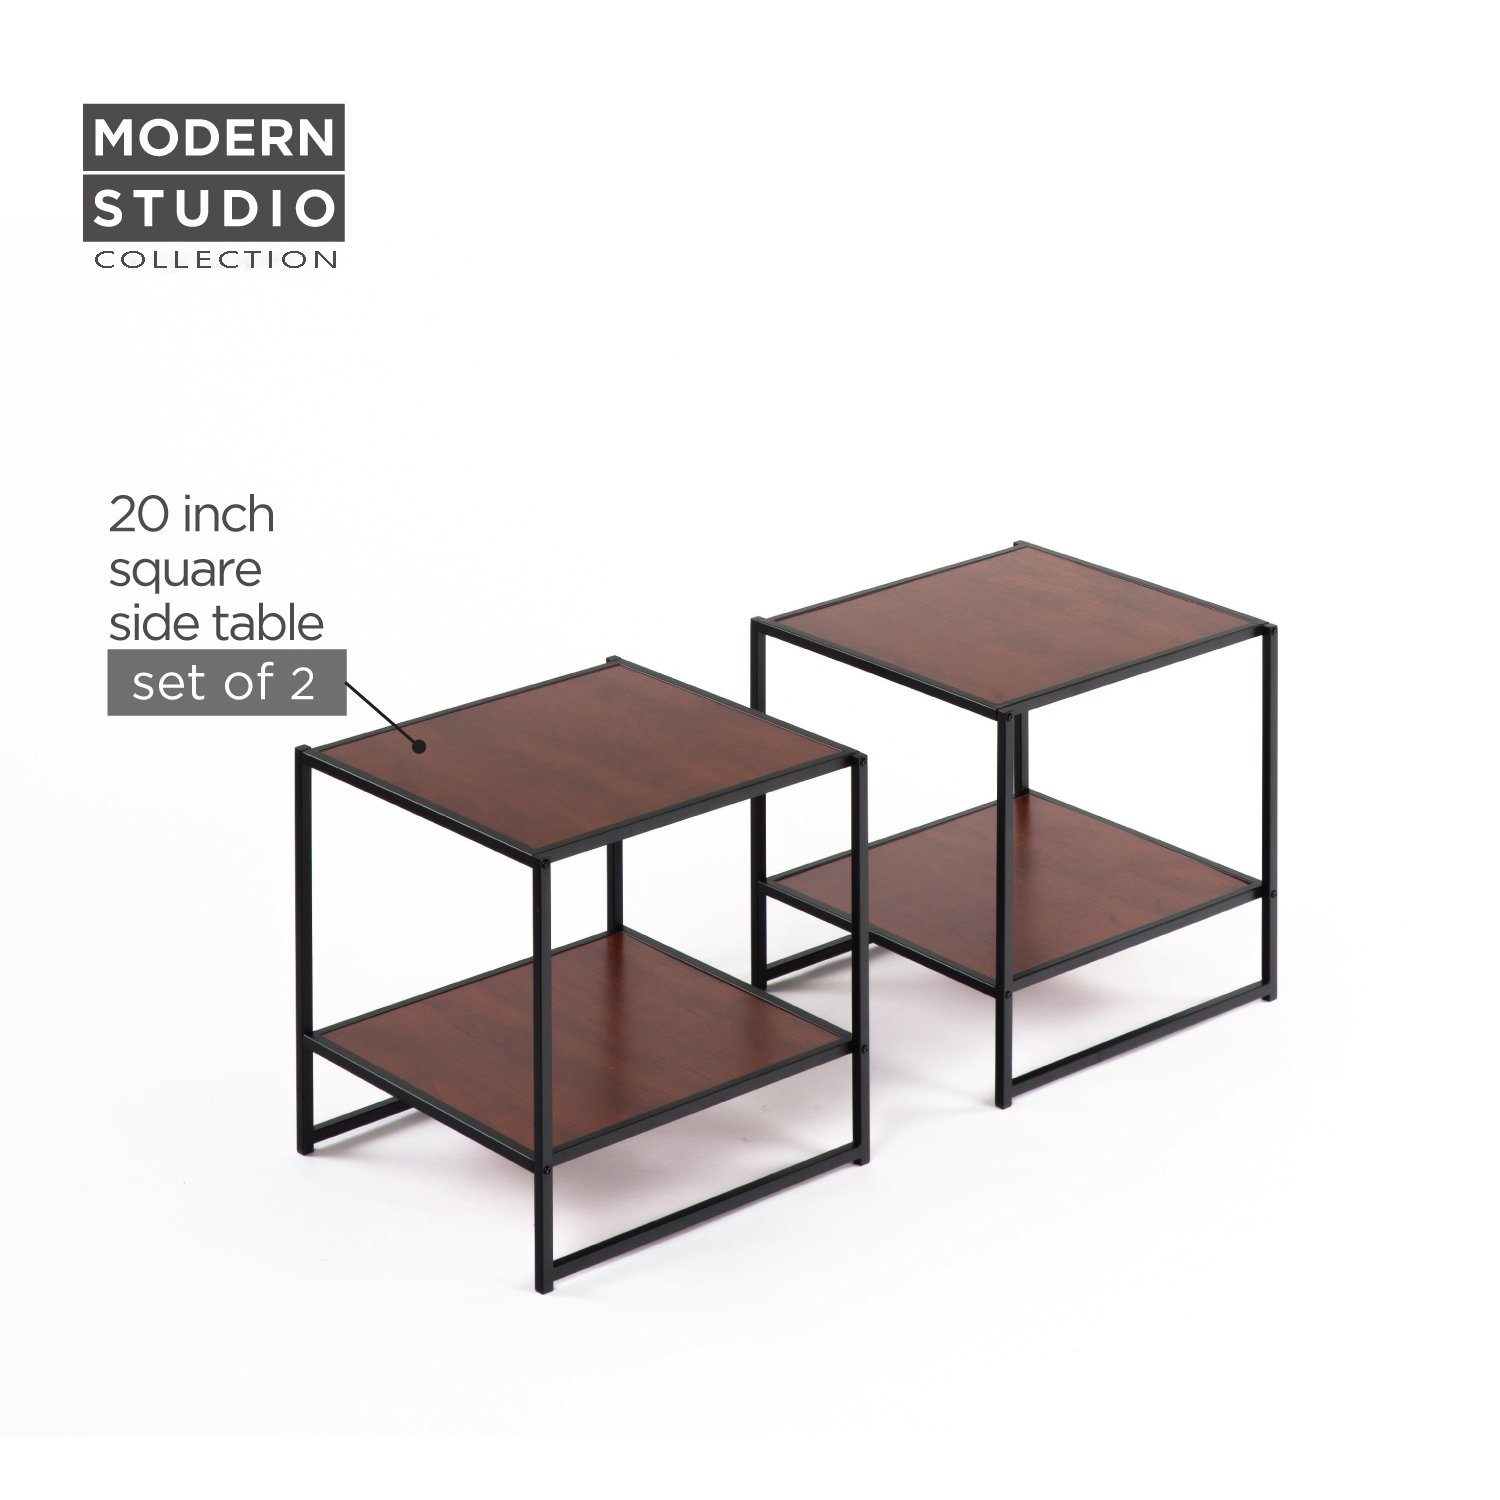 Zinus Modern Studio Collection Set of Two 20 Inch Square Side / End Tables / Night Stands MS-COMBOB